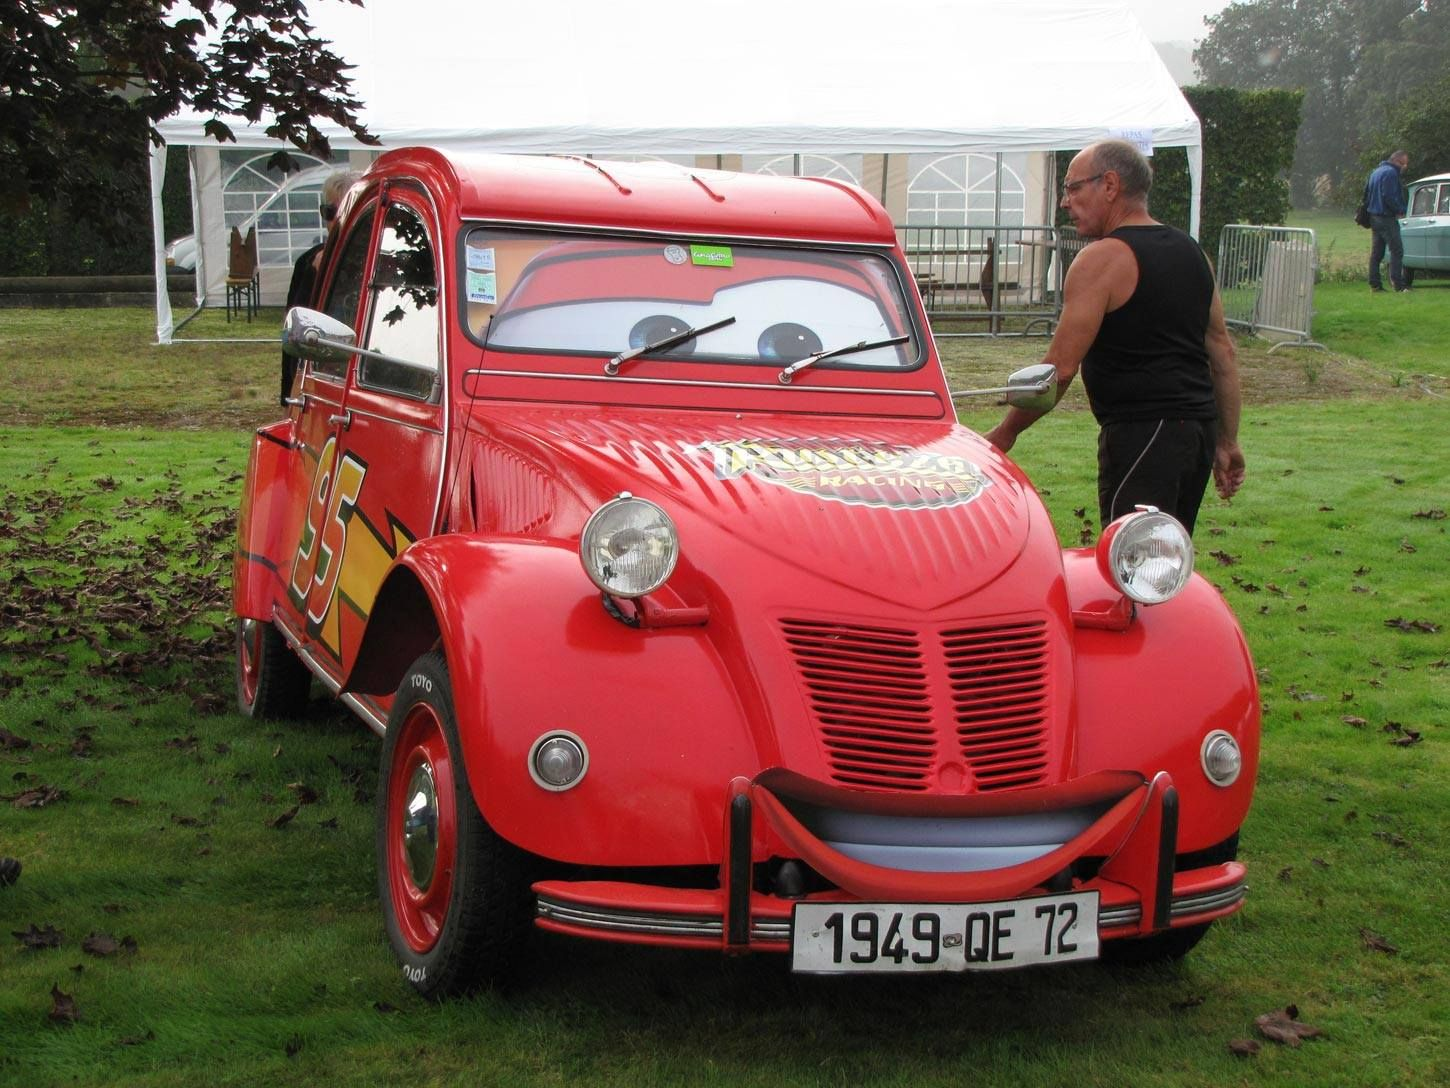 Epingle Par Rui Vaz Santos Sur 2cv 2cv Citroen 2cv Voiture